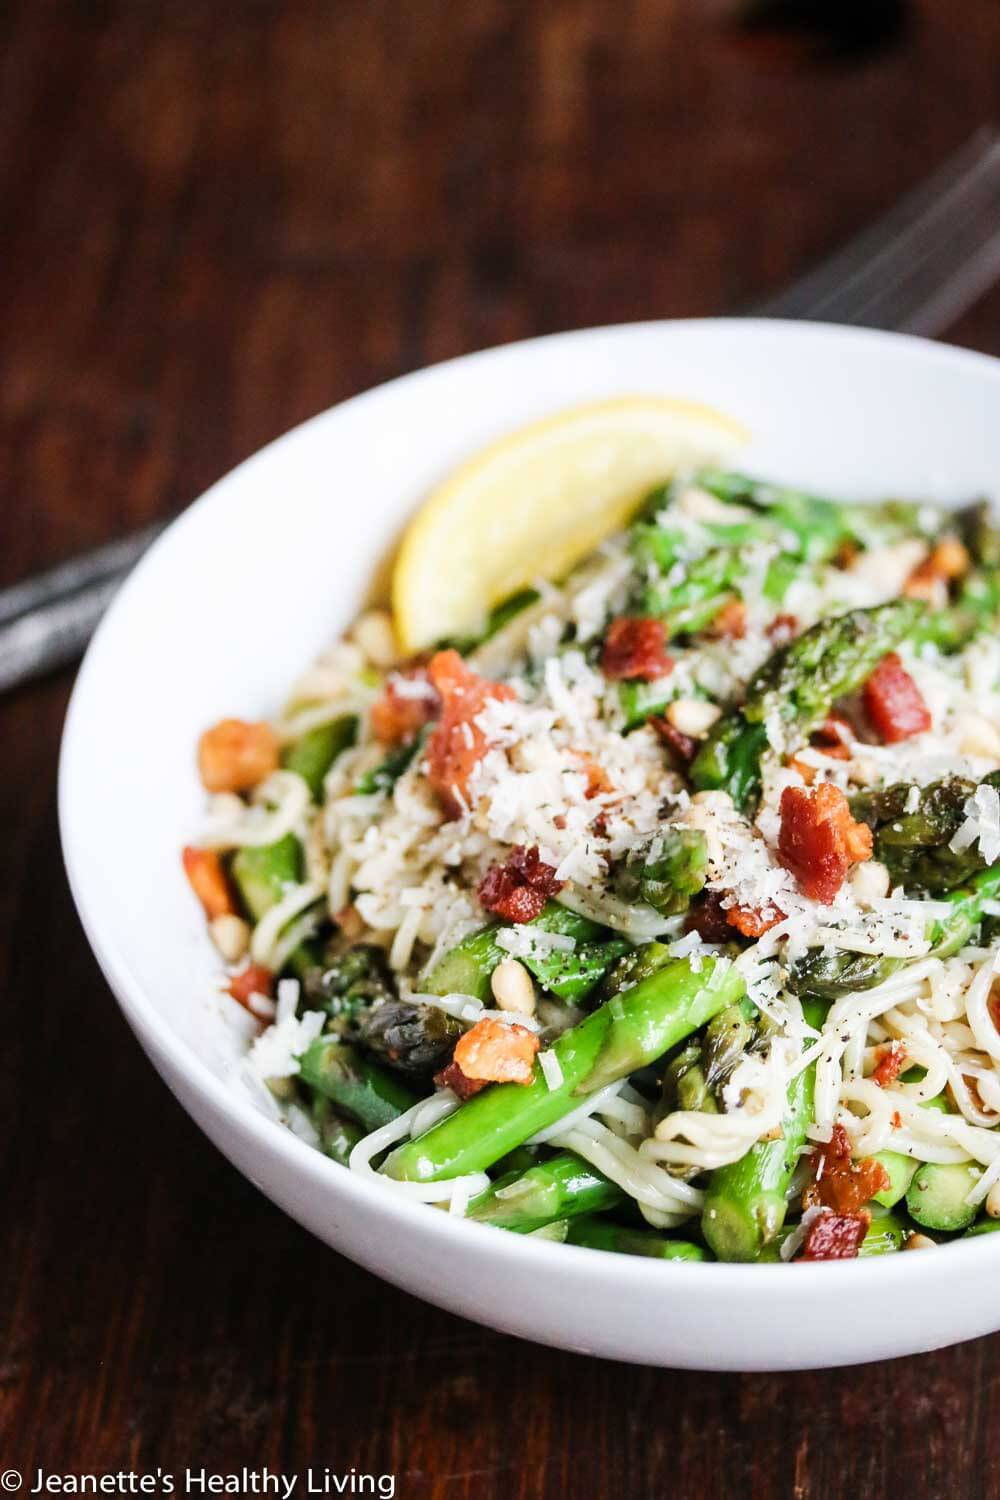 Pasta with Asparagus Pancetta and Pine Nuts - this gluten-free, low-carb pasta dish takes just 15 minutes to make - so simple and delicious!